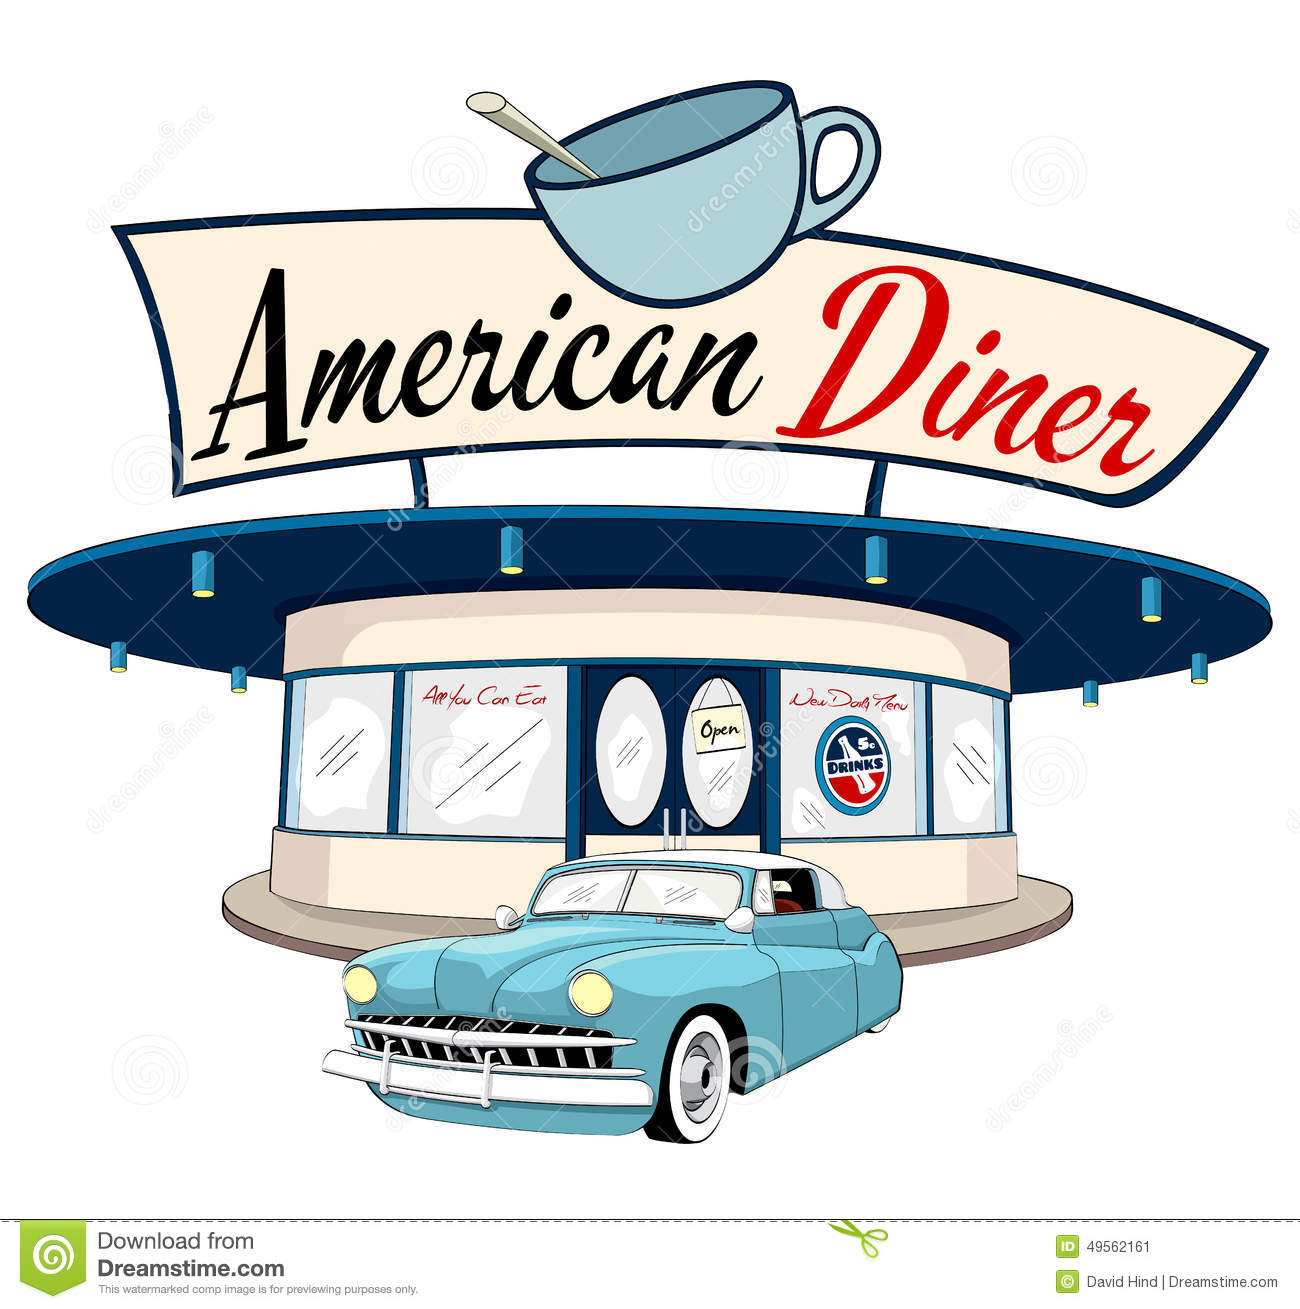 American diner clipart.